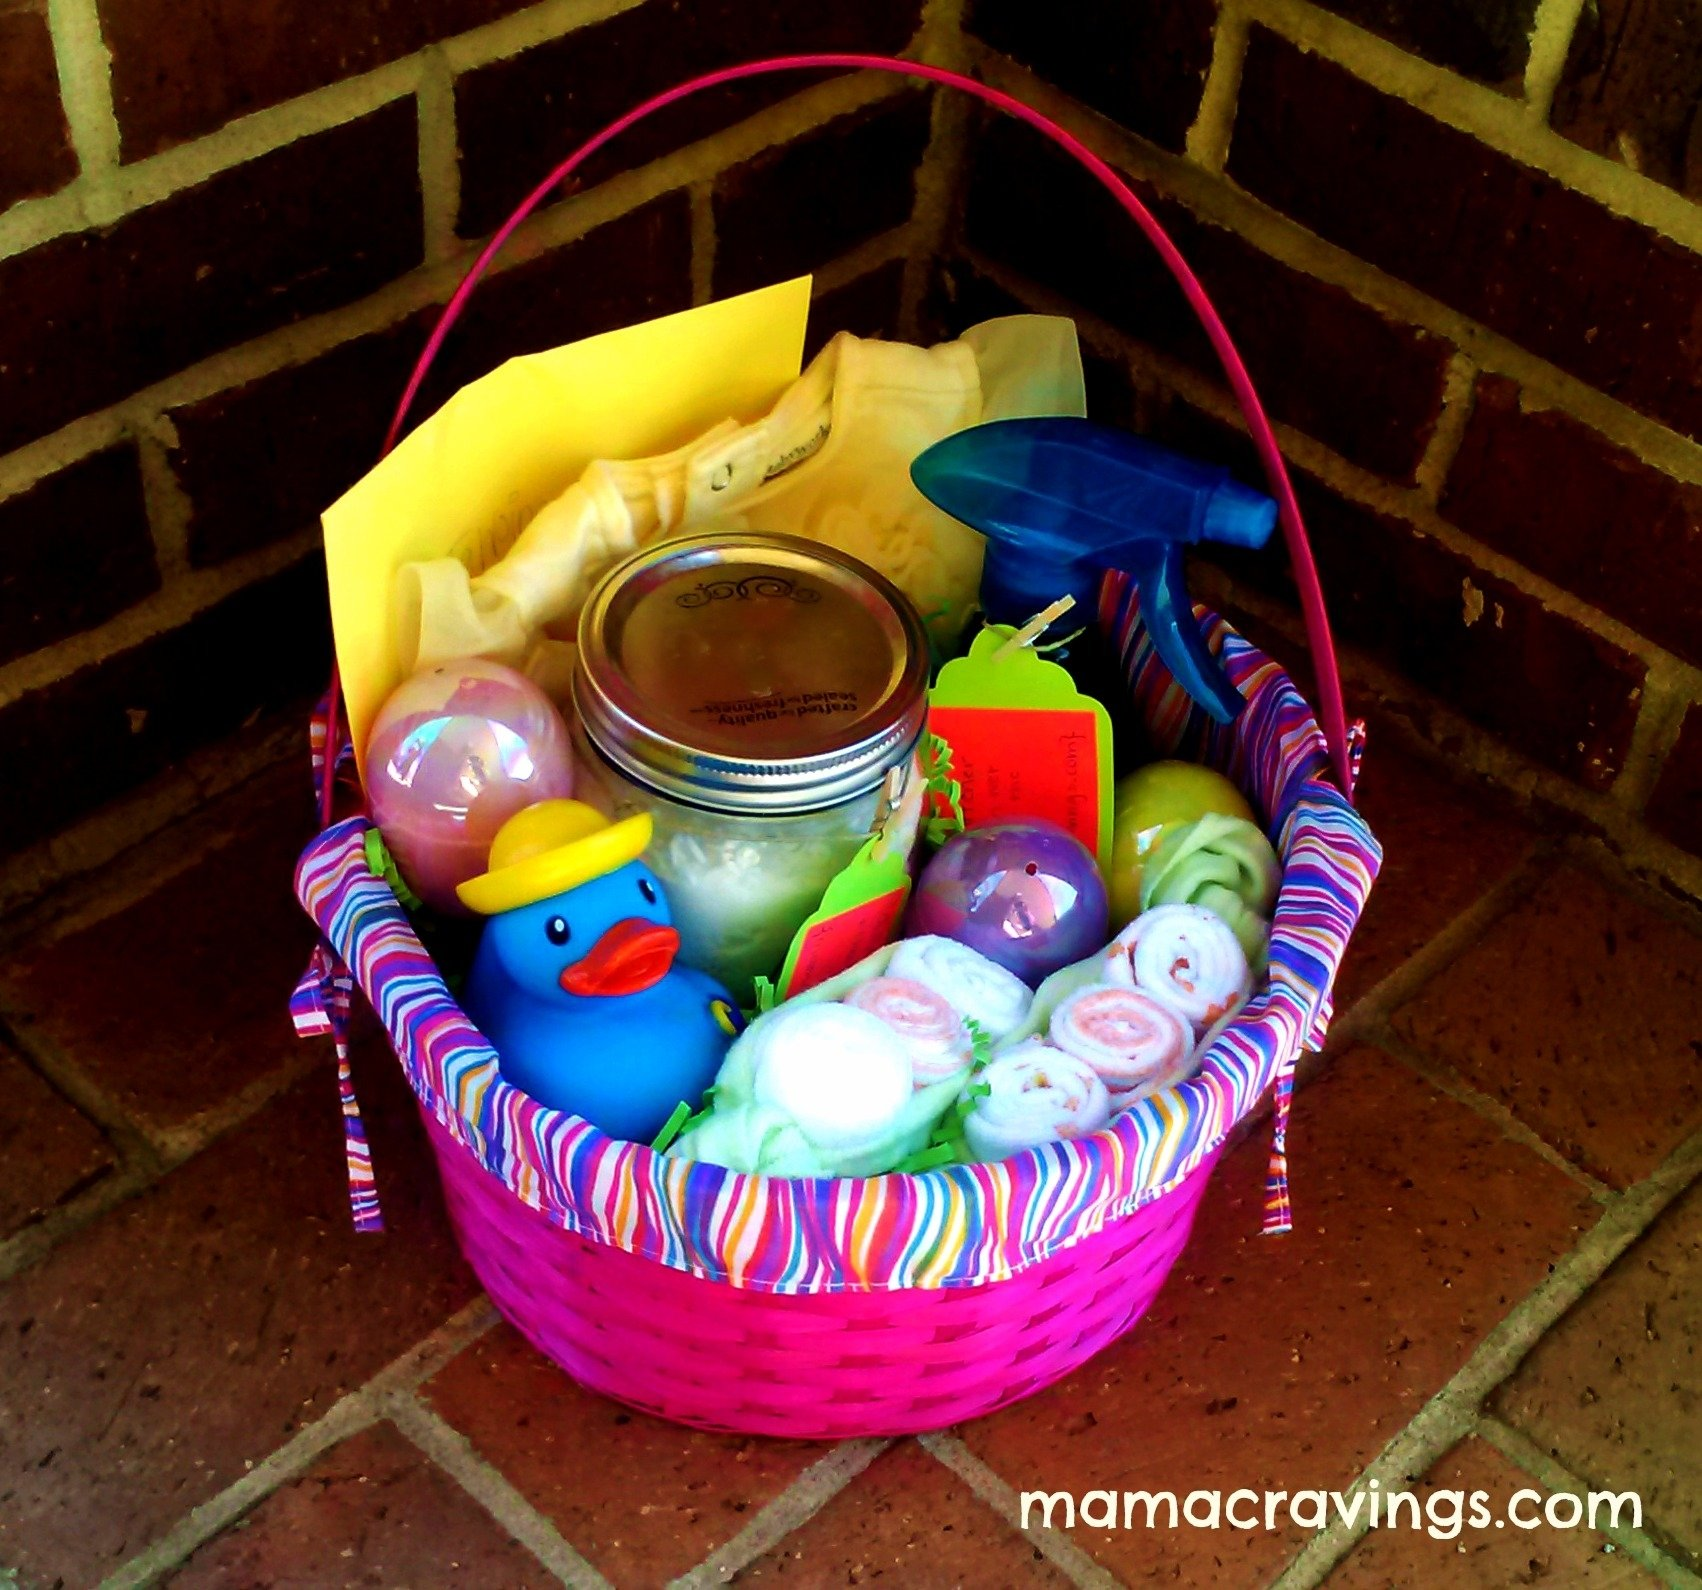 10 Great Easter Basket Ideas For Babies inspiration for spring baby gift easter basket mamacravings 2021